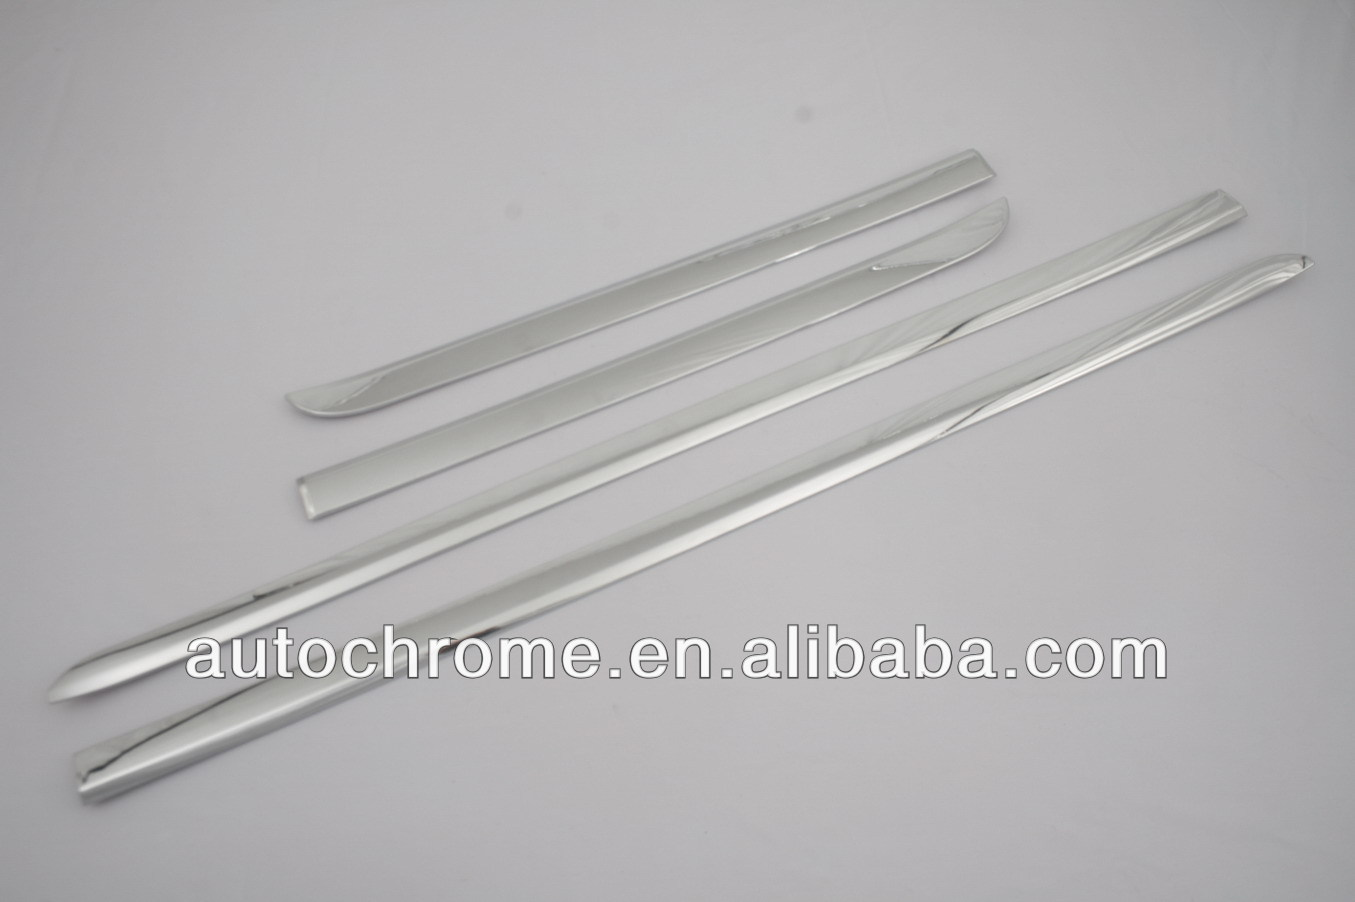 Car Accessory Chrome Side Door Molding Trim Set for Hyundai Santa Fe 2013